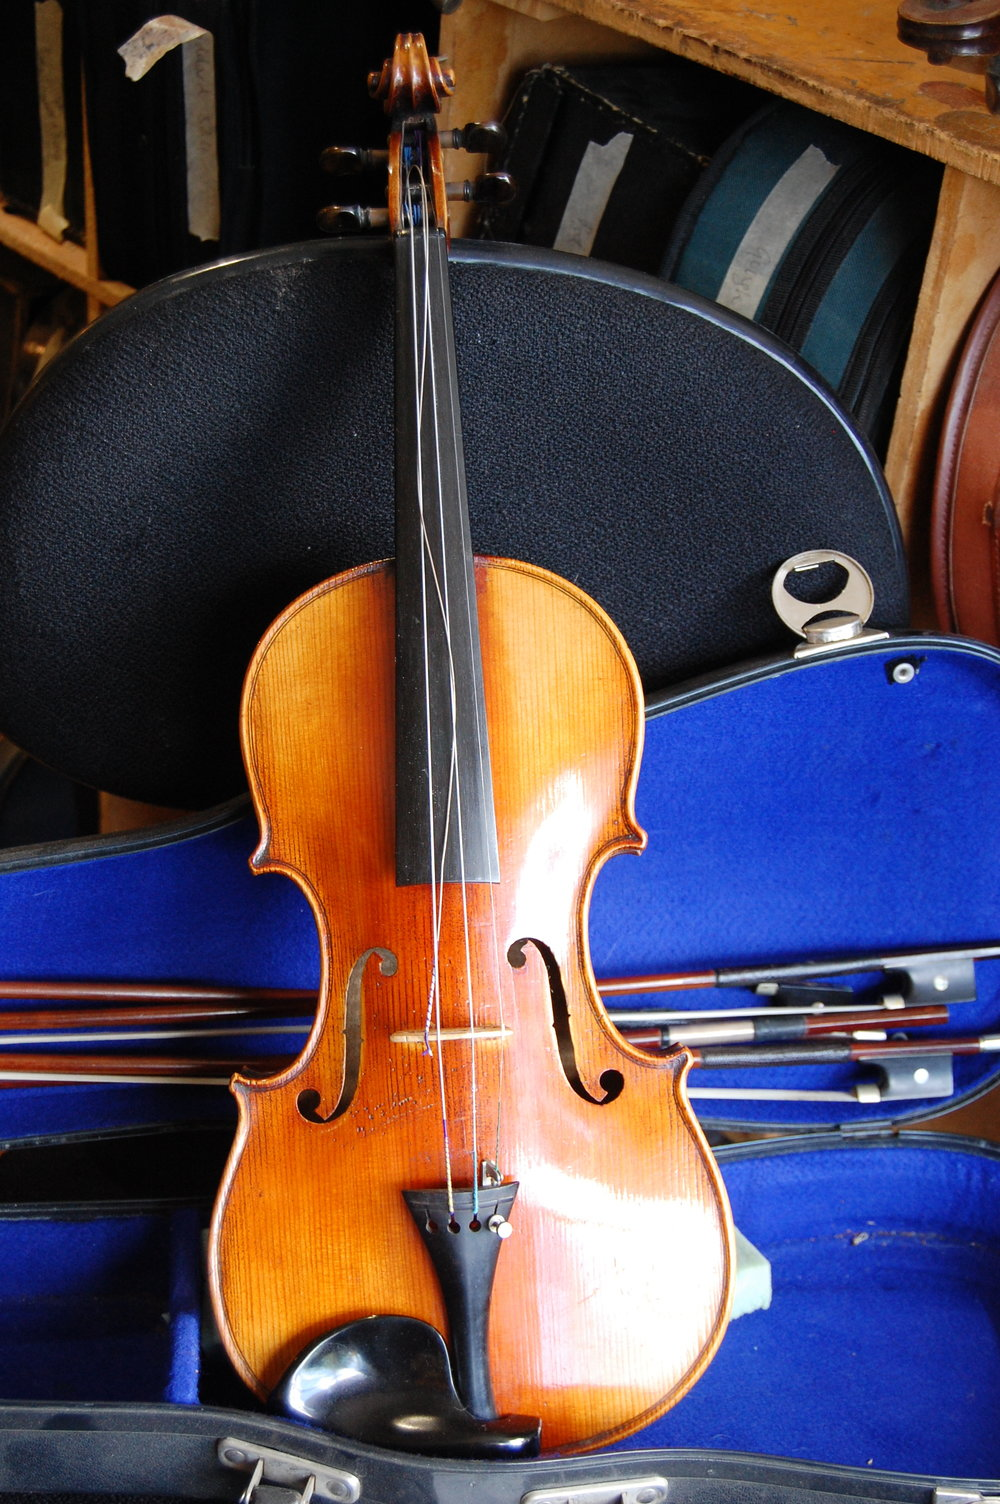 Full size German violin C1880 with case, two good bows and two bow parts. Selling for £600 CS003  Condition: Good  Tone: 3/5  Value for money: 5/5  Overall rating: 5/5